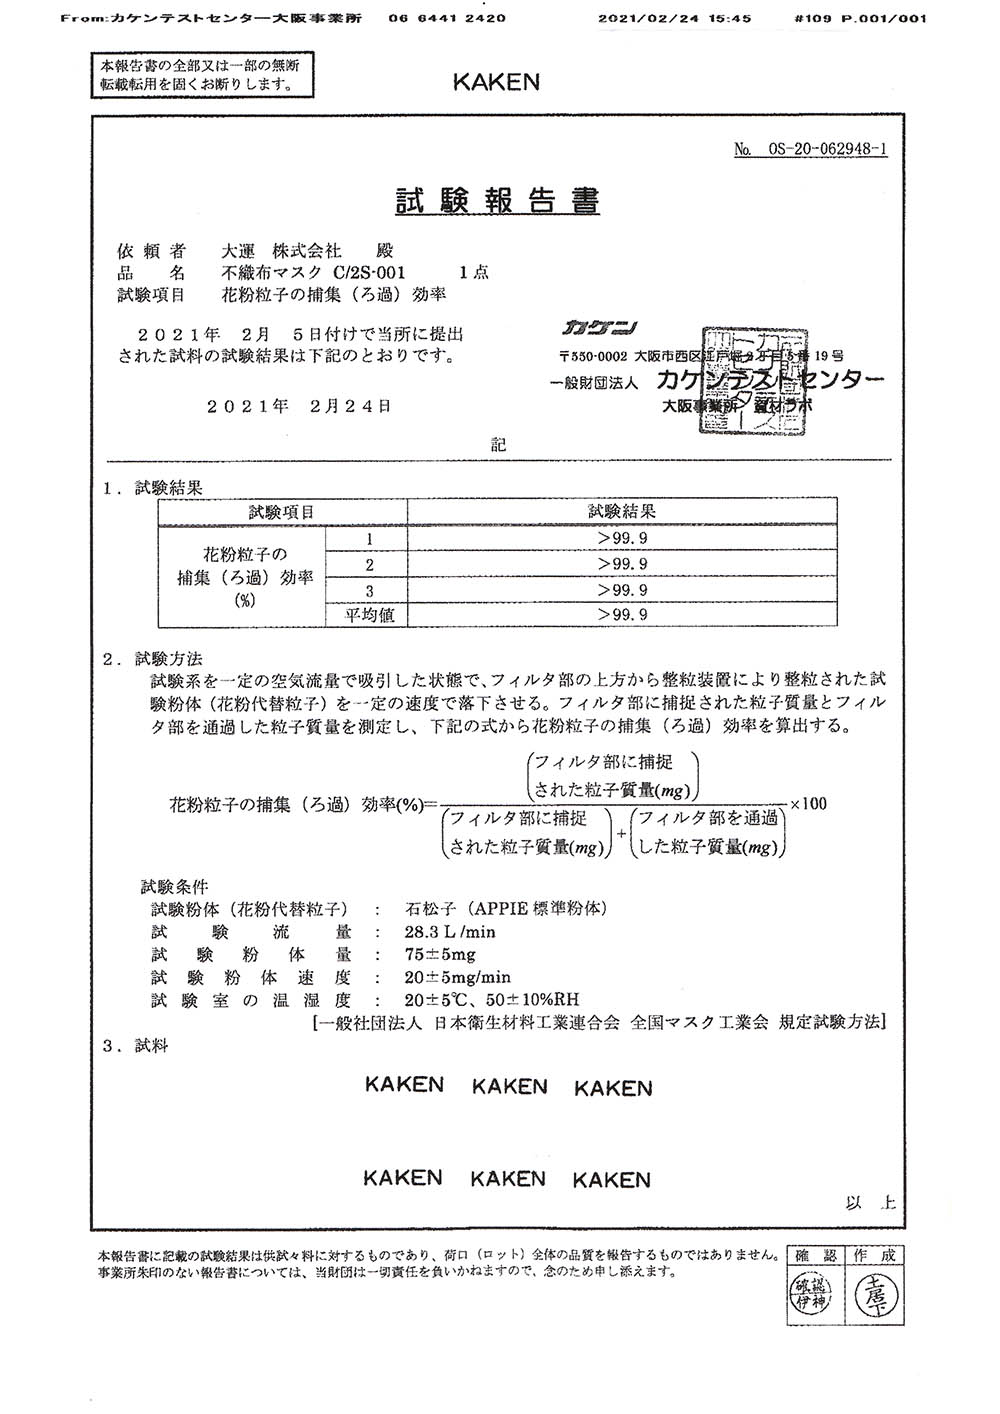 【A】<送料無料>【6箱セット】世界標準の高品質マスク 三層不織布マスク ソフト平ゴム 1箱50枚入 大人用